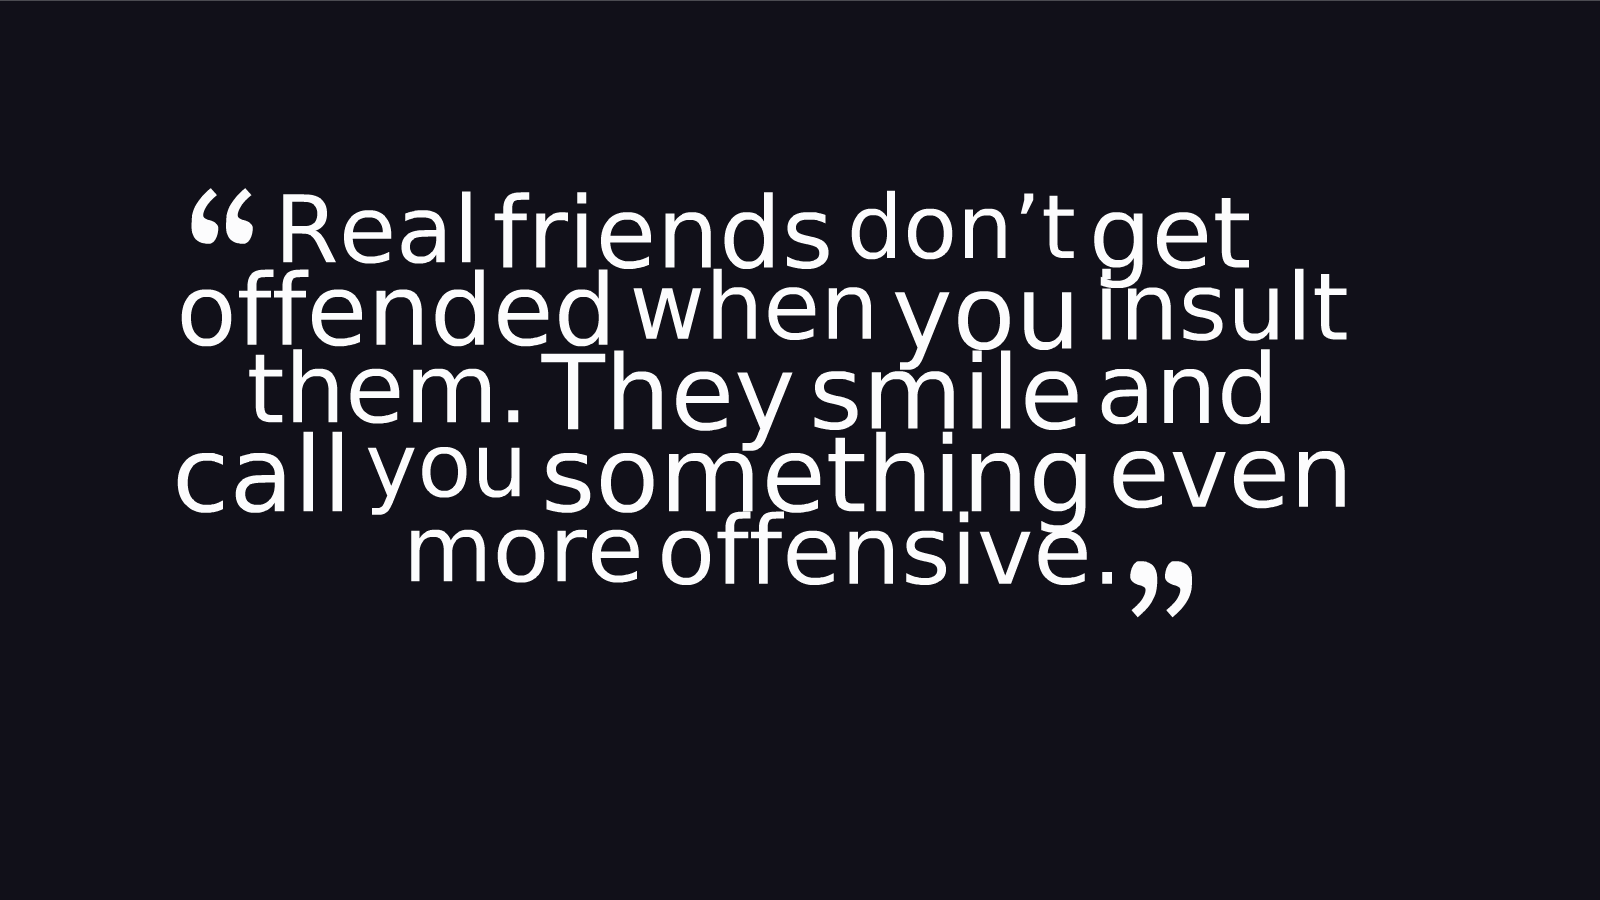 A17 quotes about friends - Real friends don't get offended when you insult them. They smile and call you something even more offensive.